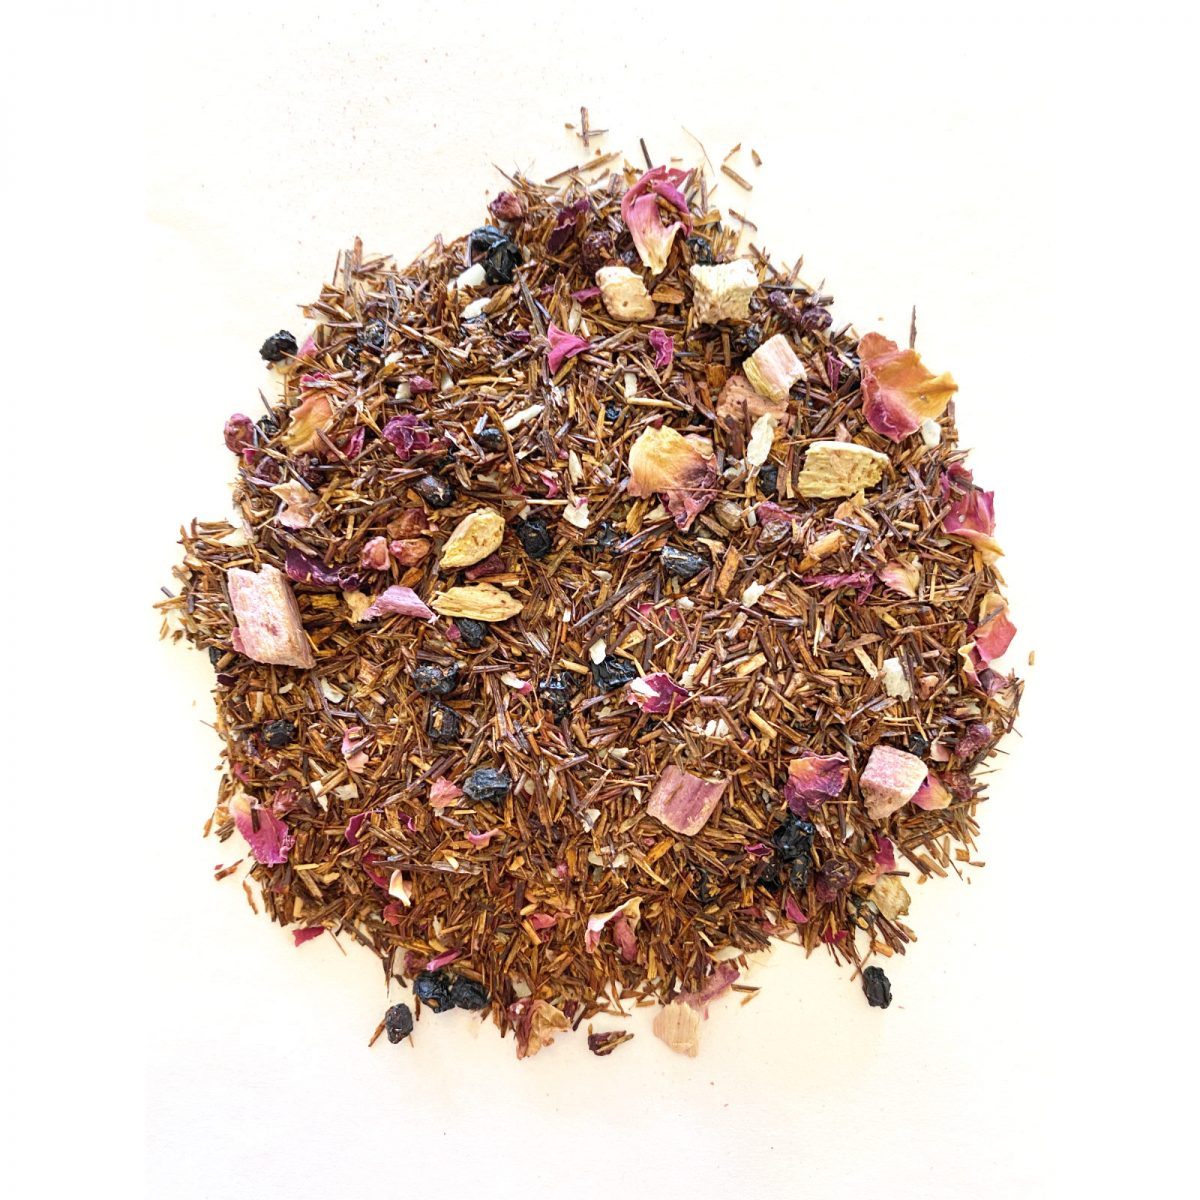 Rhubarb Raspberry Rooibos Tea from Cedarburg Province in South Africa with Freeze Dried Rhubarb, Freeze Dried Raspberry and Vanilla Essential Oil.